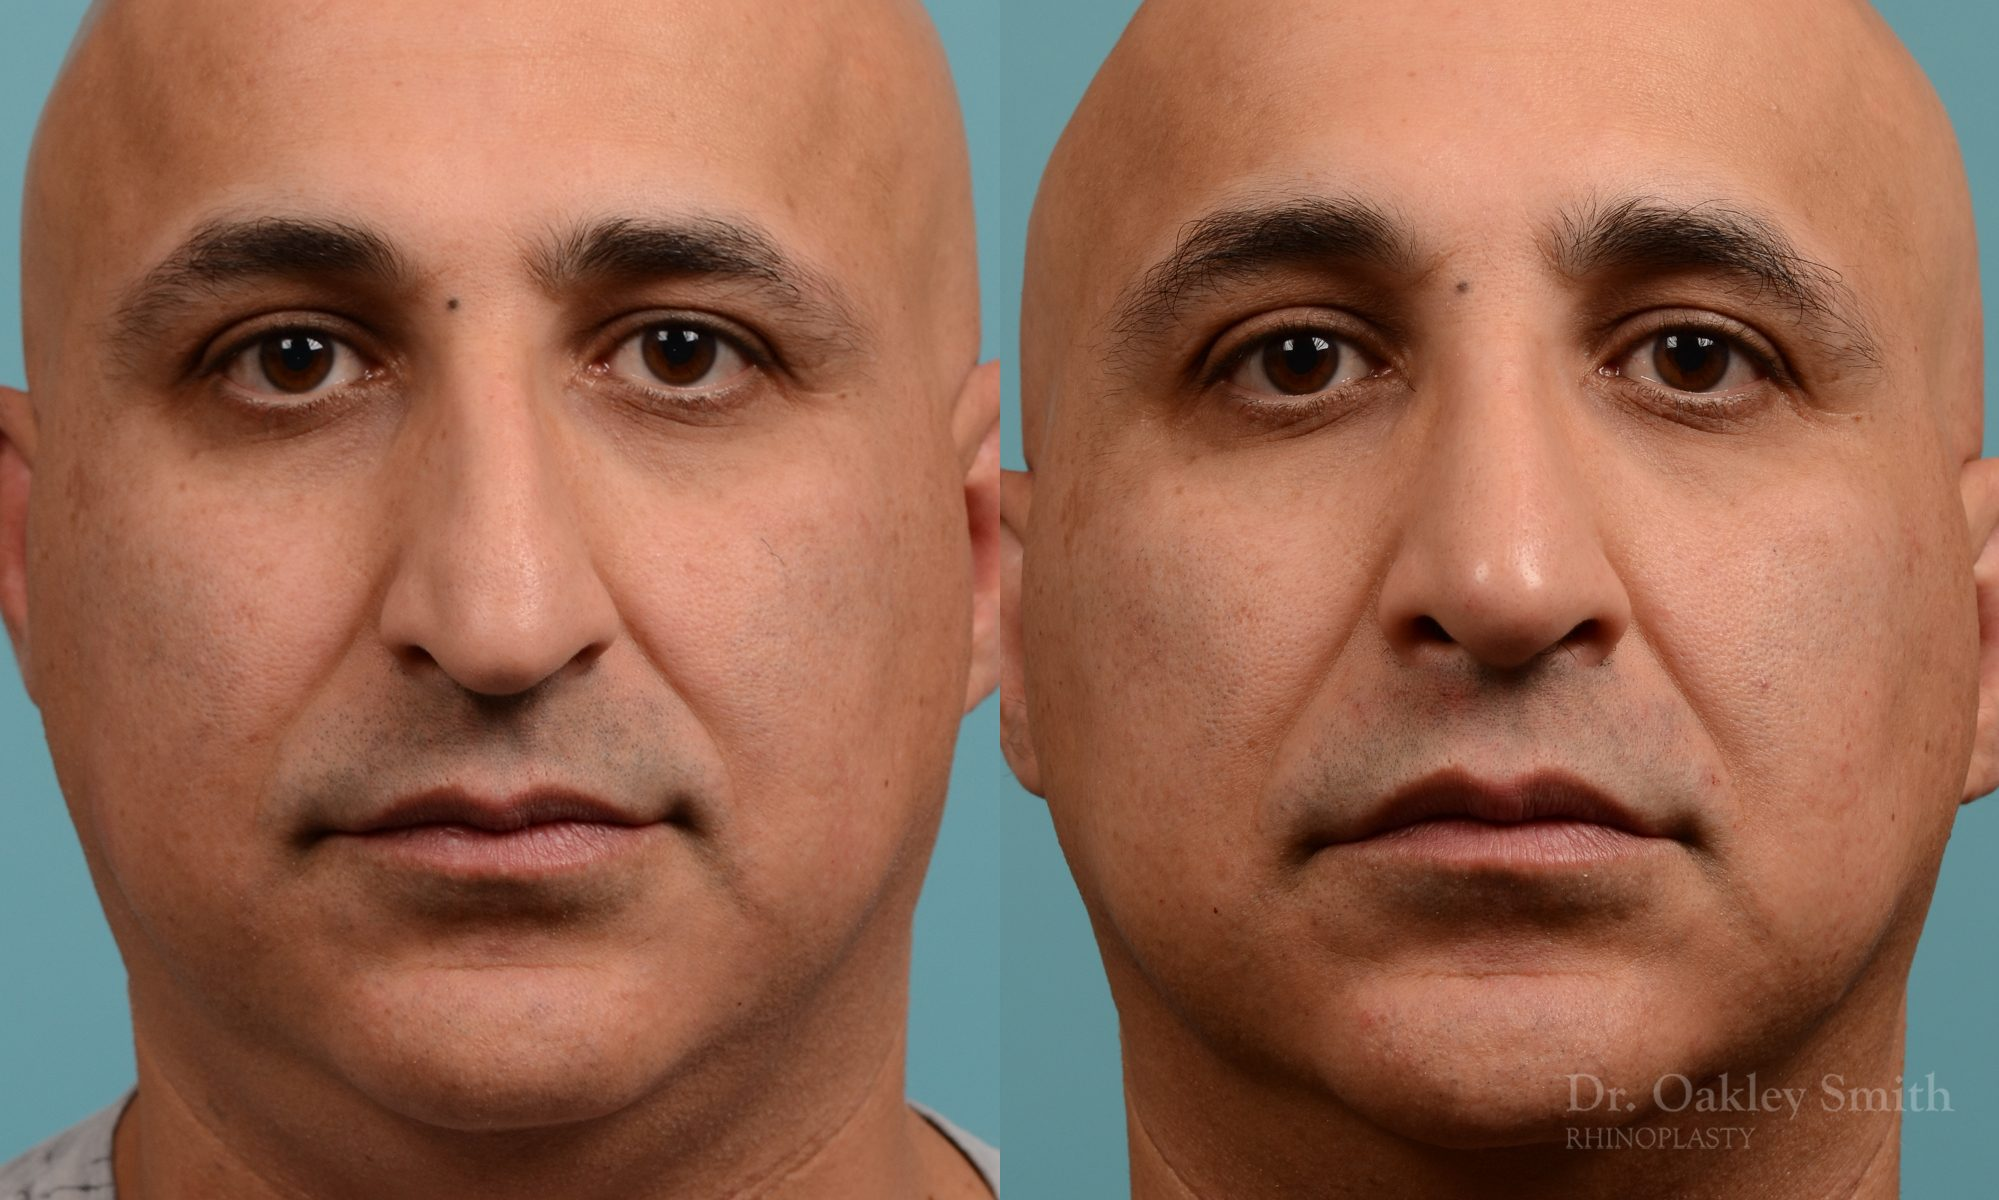 As one of a hand full of surgeons in North America who limits his practice to only Rhinoplasty surgery, it is obvious that he has mastered his art. There is no question why he is one of the busiest cosmetic nose job surgeons in the country.